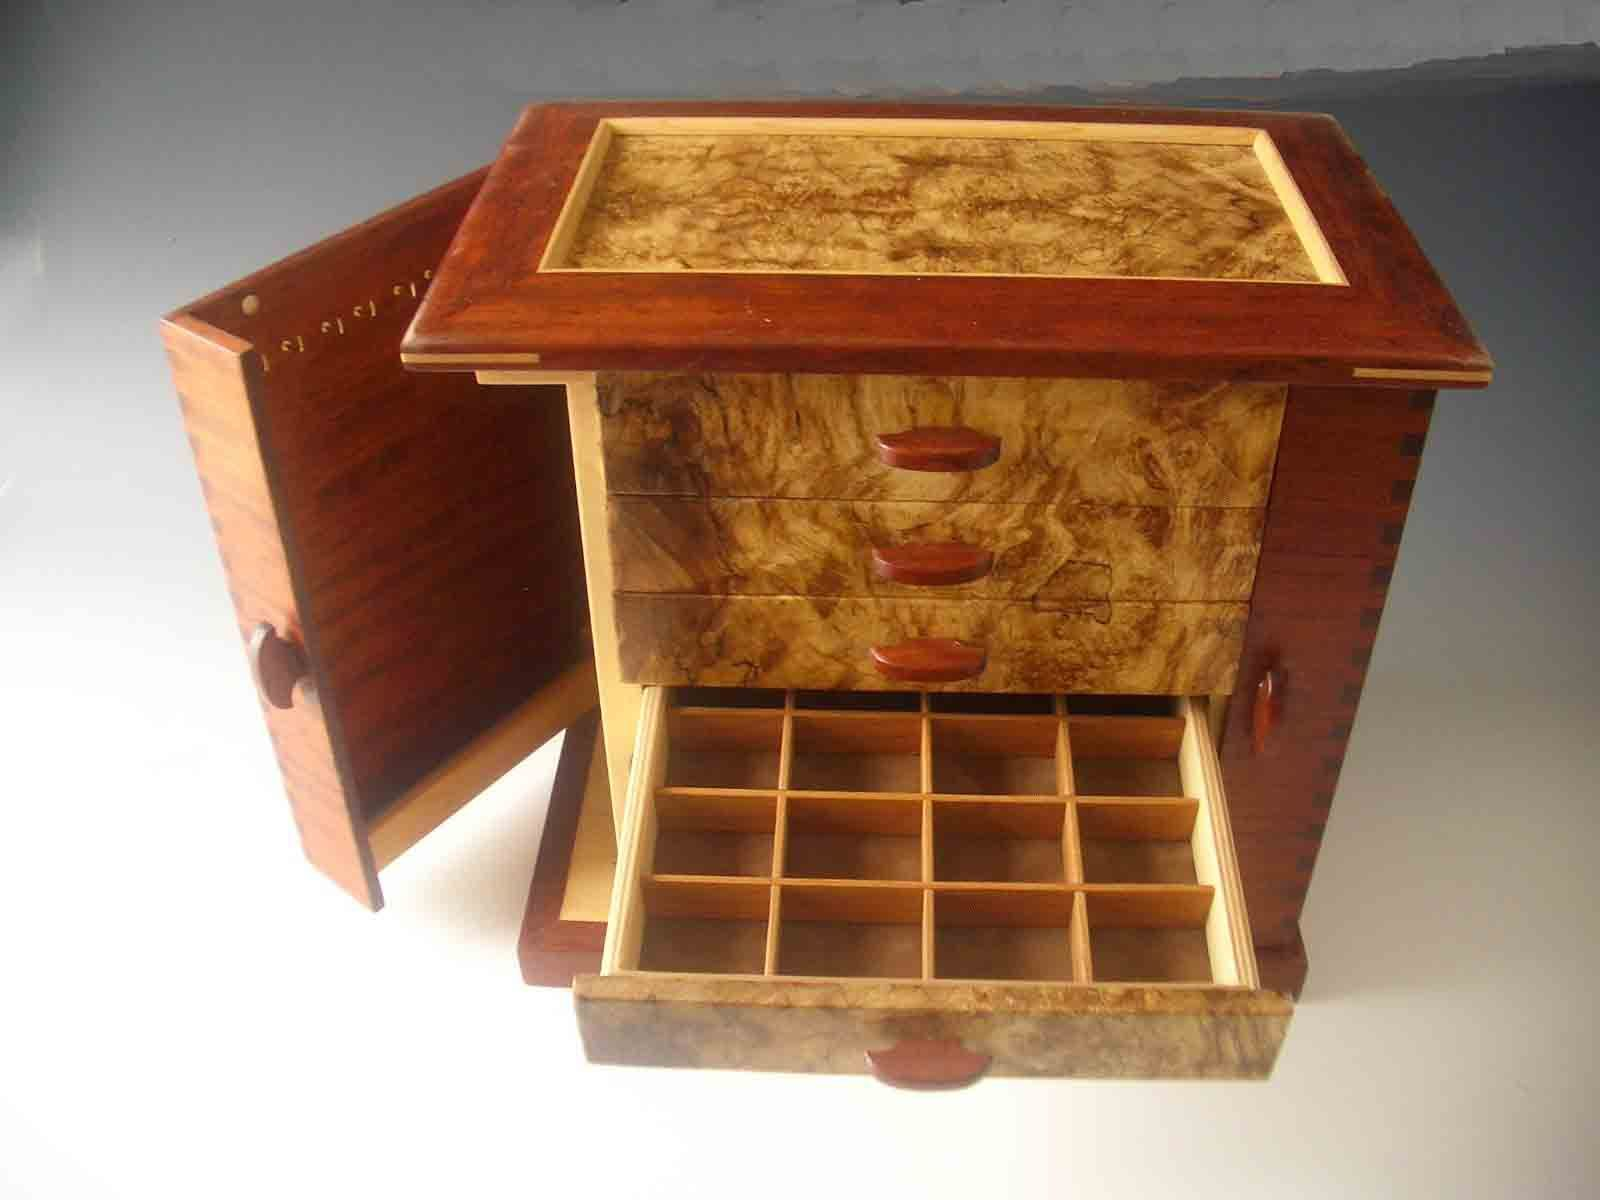 2805accb0 Handcrafted necklace holders jewelry box made of exotic wood with two doors  that swing open to hold necklaces, and six drawers; one door and one drawer  are ...